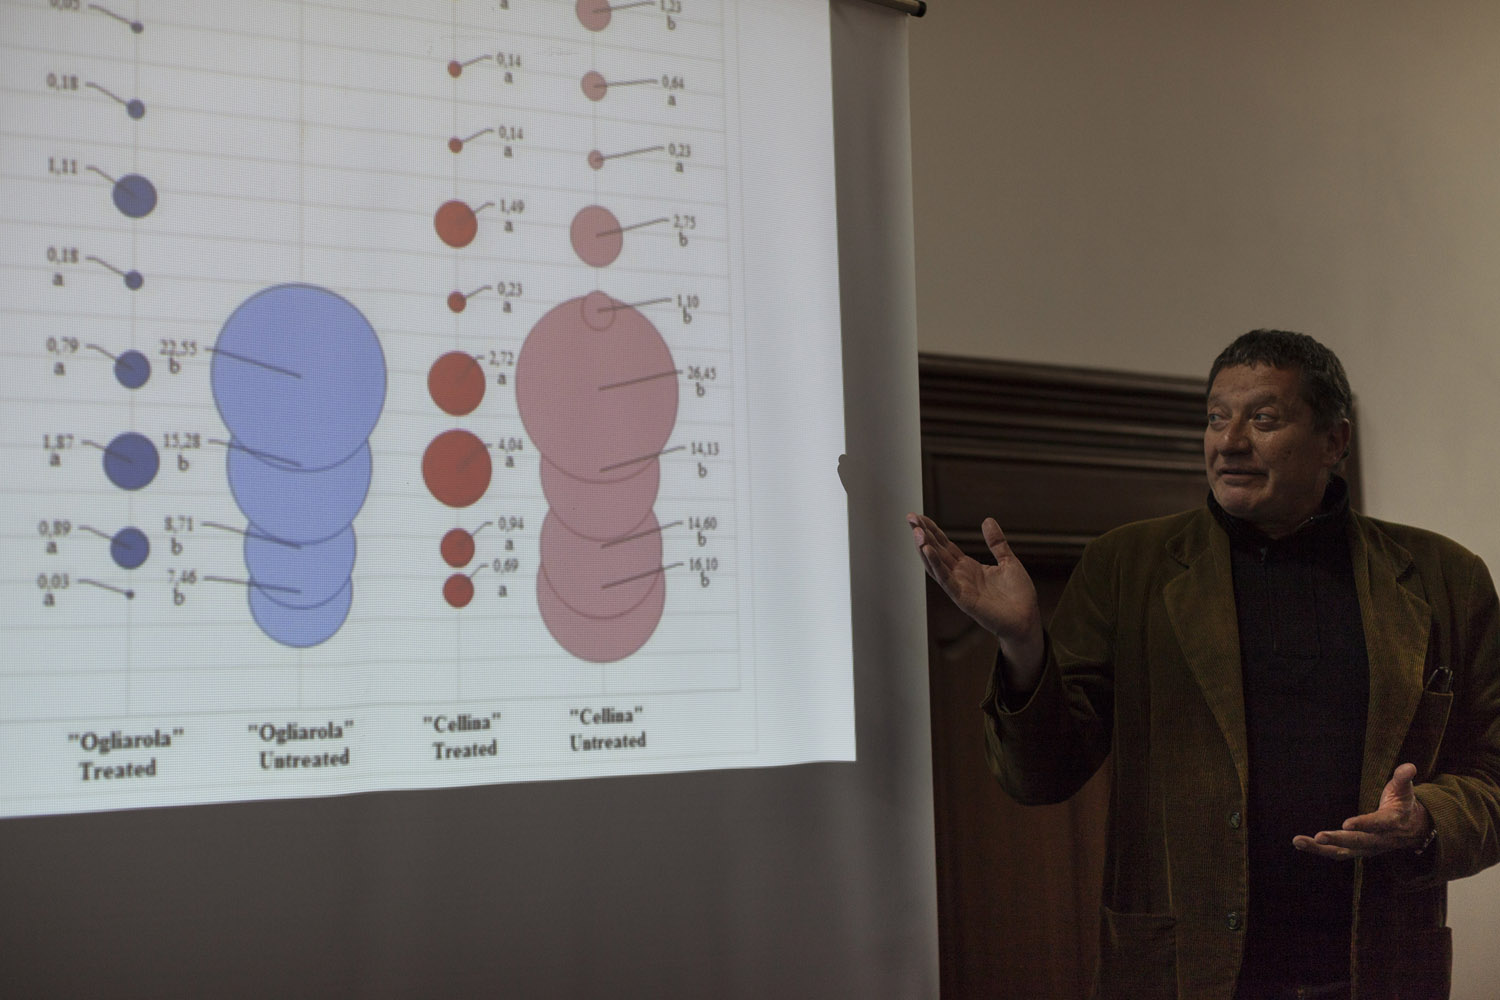 Presenting the results of a research on a treatment to reduce the presence of the Xylella fastidiosa in infected olive trees. While the authorities have followed the mainstream scientific view that it is impossible to cure trees infected from the bacteria, other researchers are experimenting with treatments to at least achieve a degree of coexistence with it. (2018)